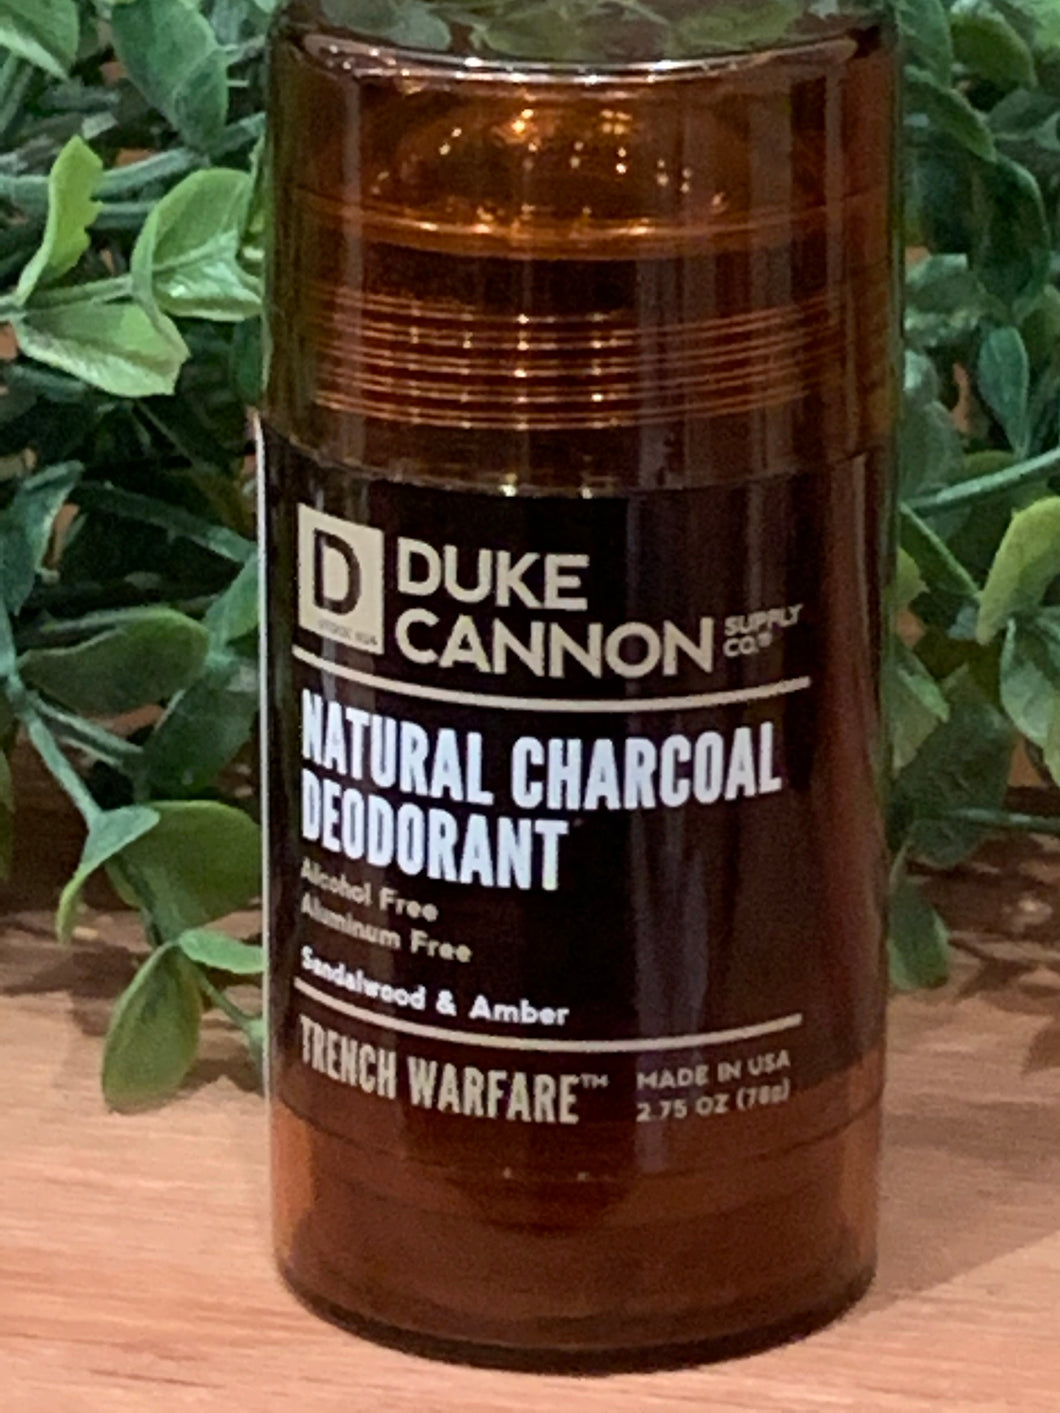 Natural Charcoal Men's Deodorant, Trench Warfare, Sandalwood & Amber